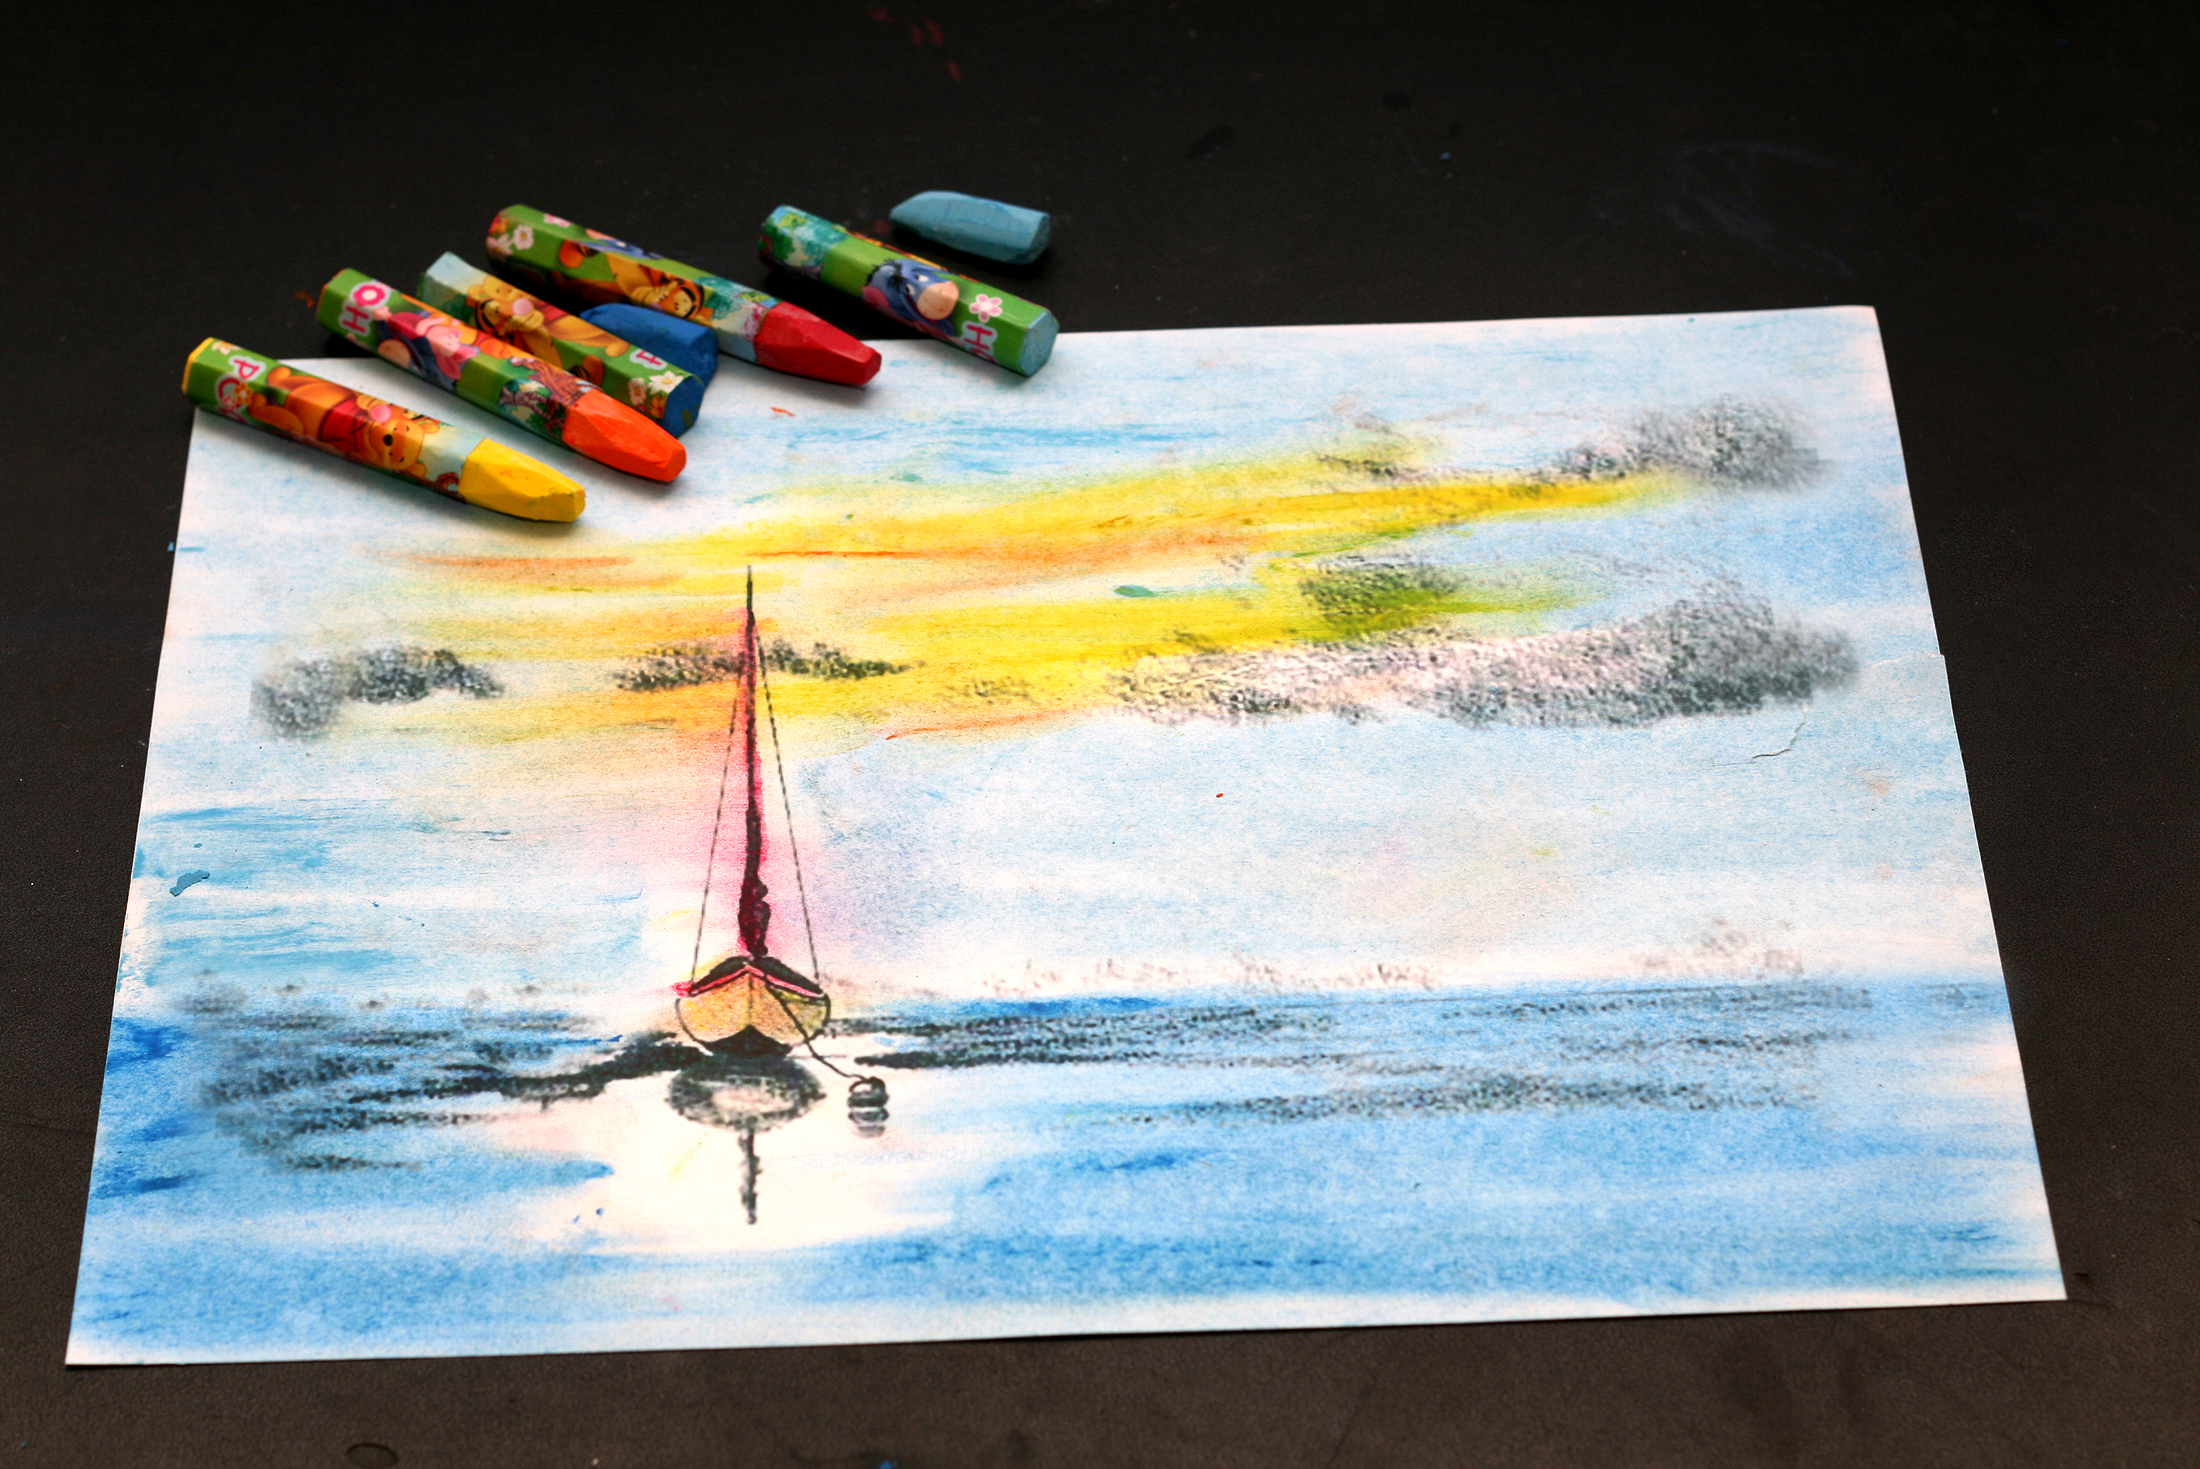 2200x1469 How To Draw With Oil Pastels 8 Steps (With Pictures)